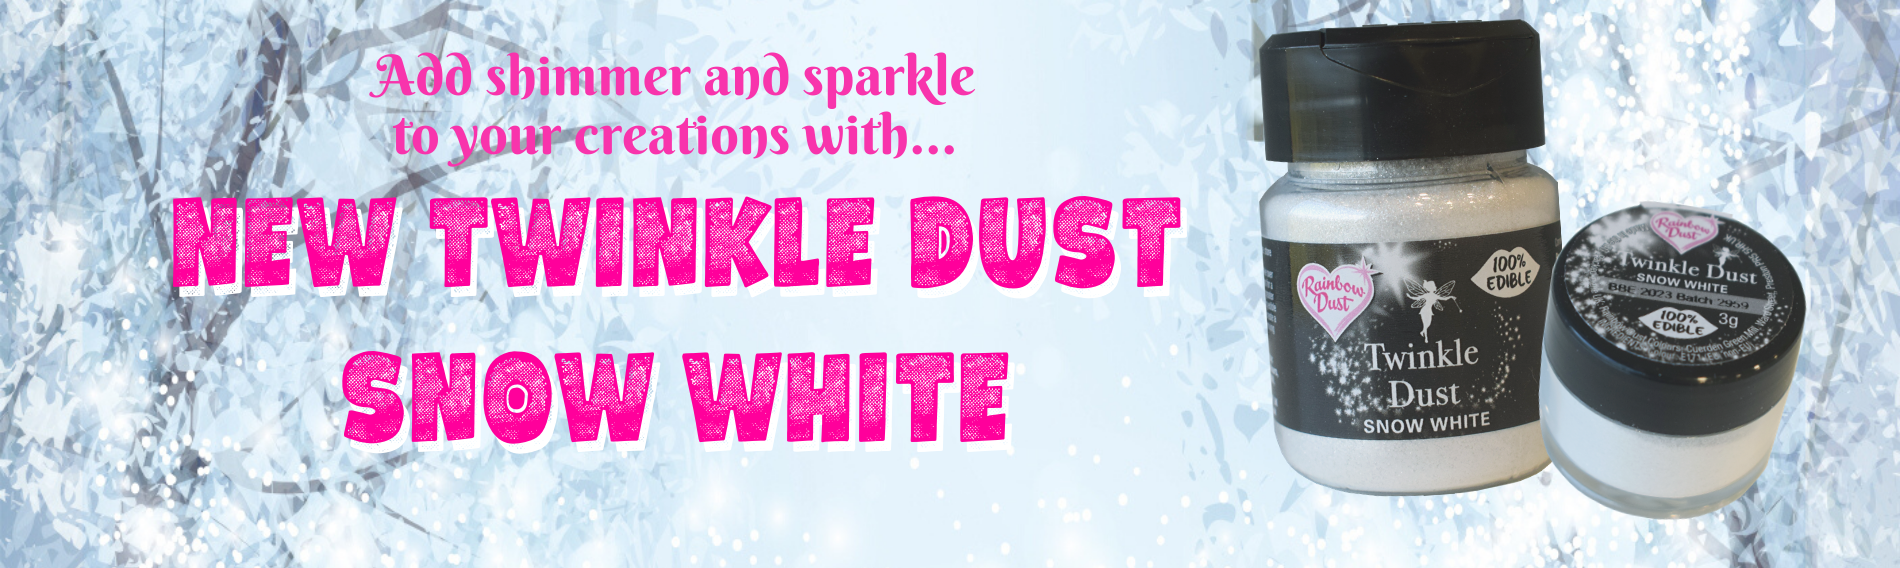 (OUT) Twinkle Dust